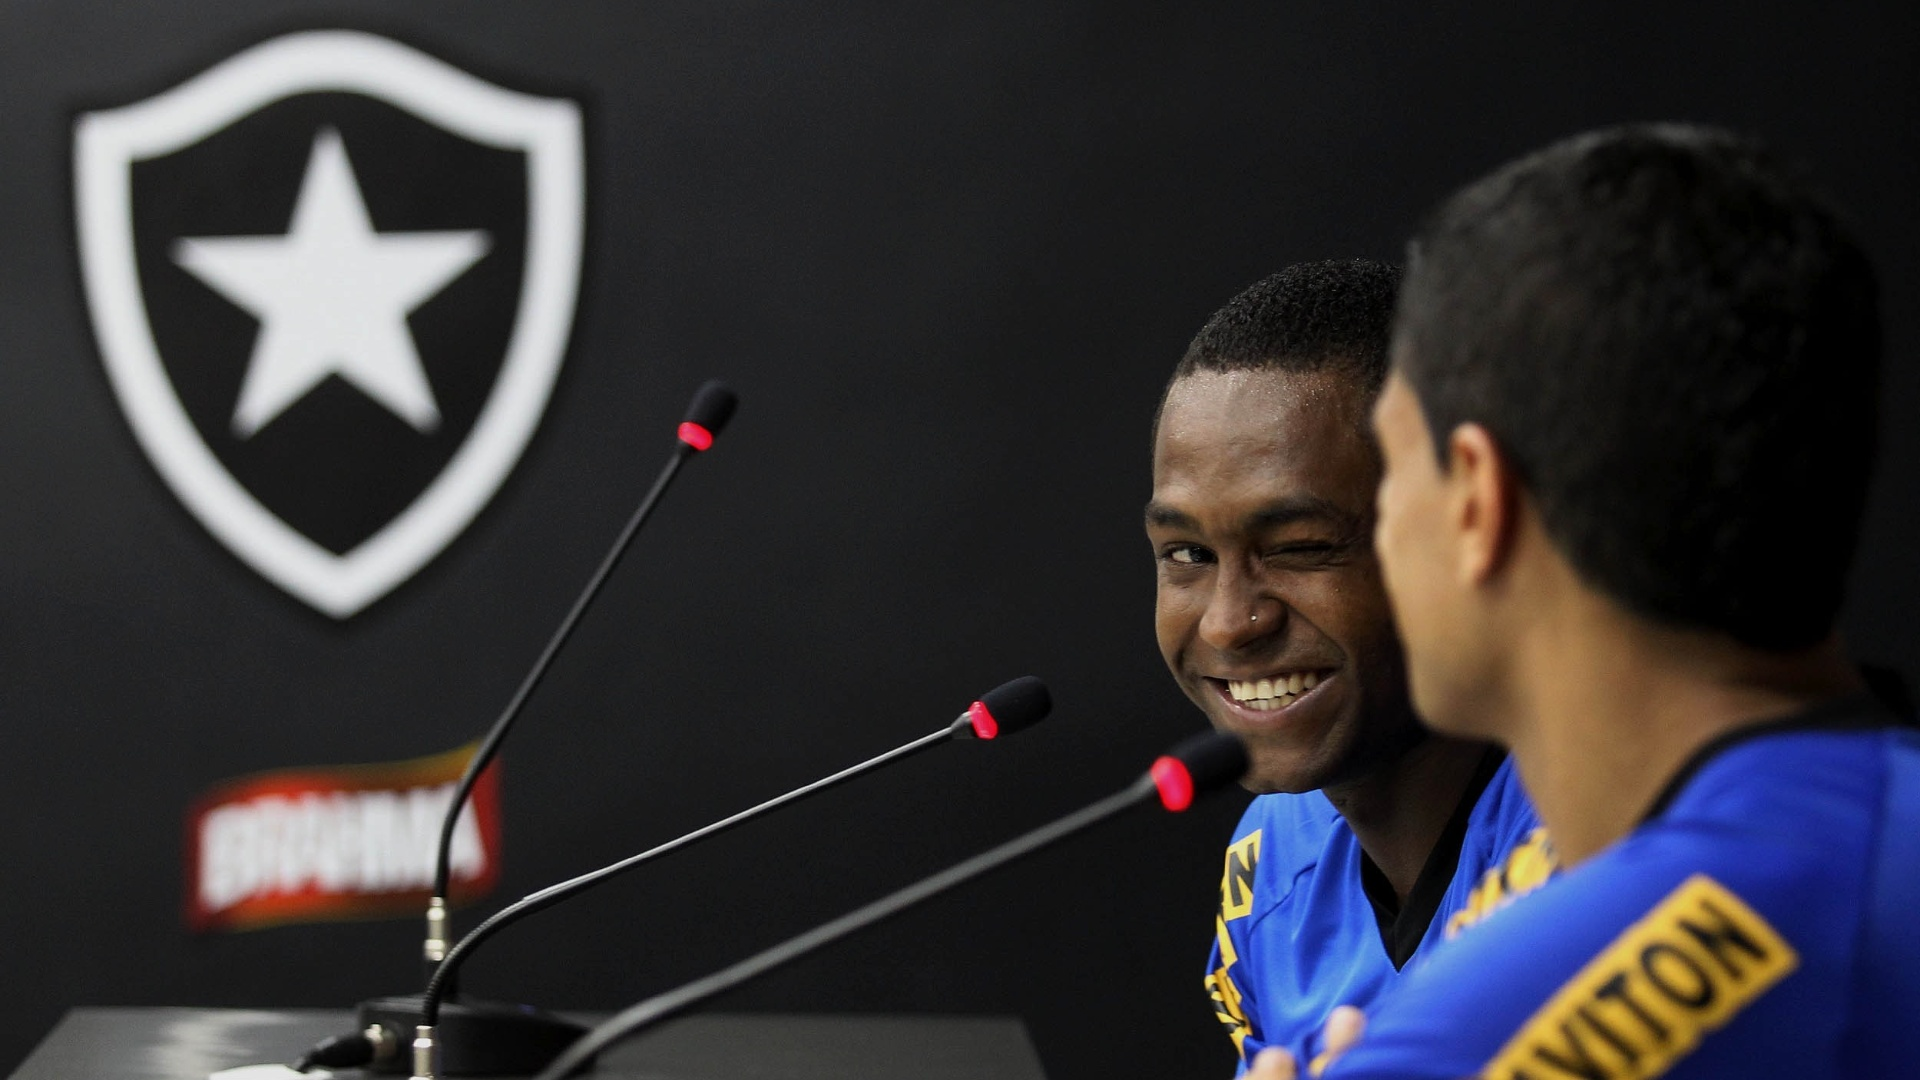 Jobson sorri durante coletiva de imprensa no Botafogo (15/02/2012)